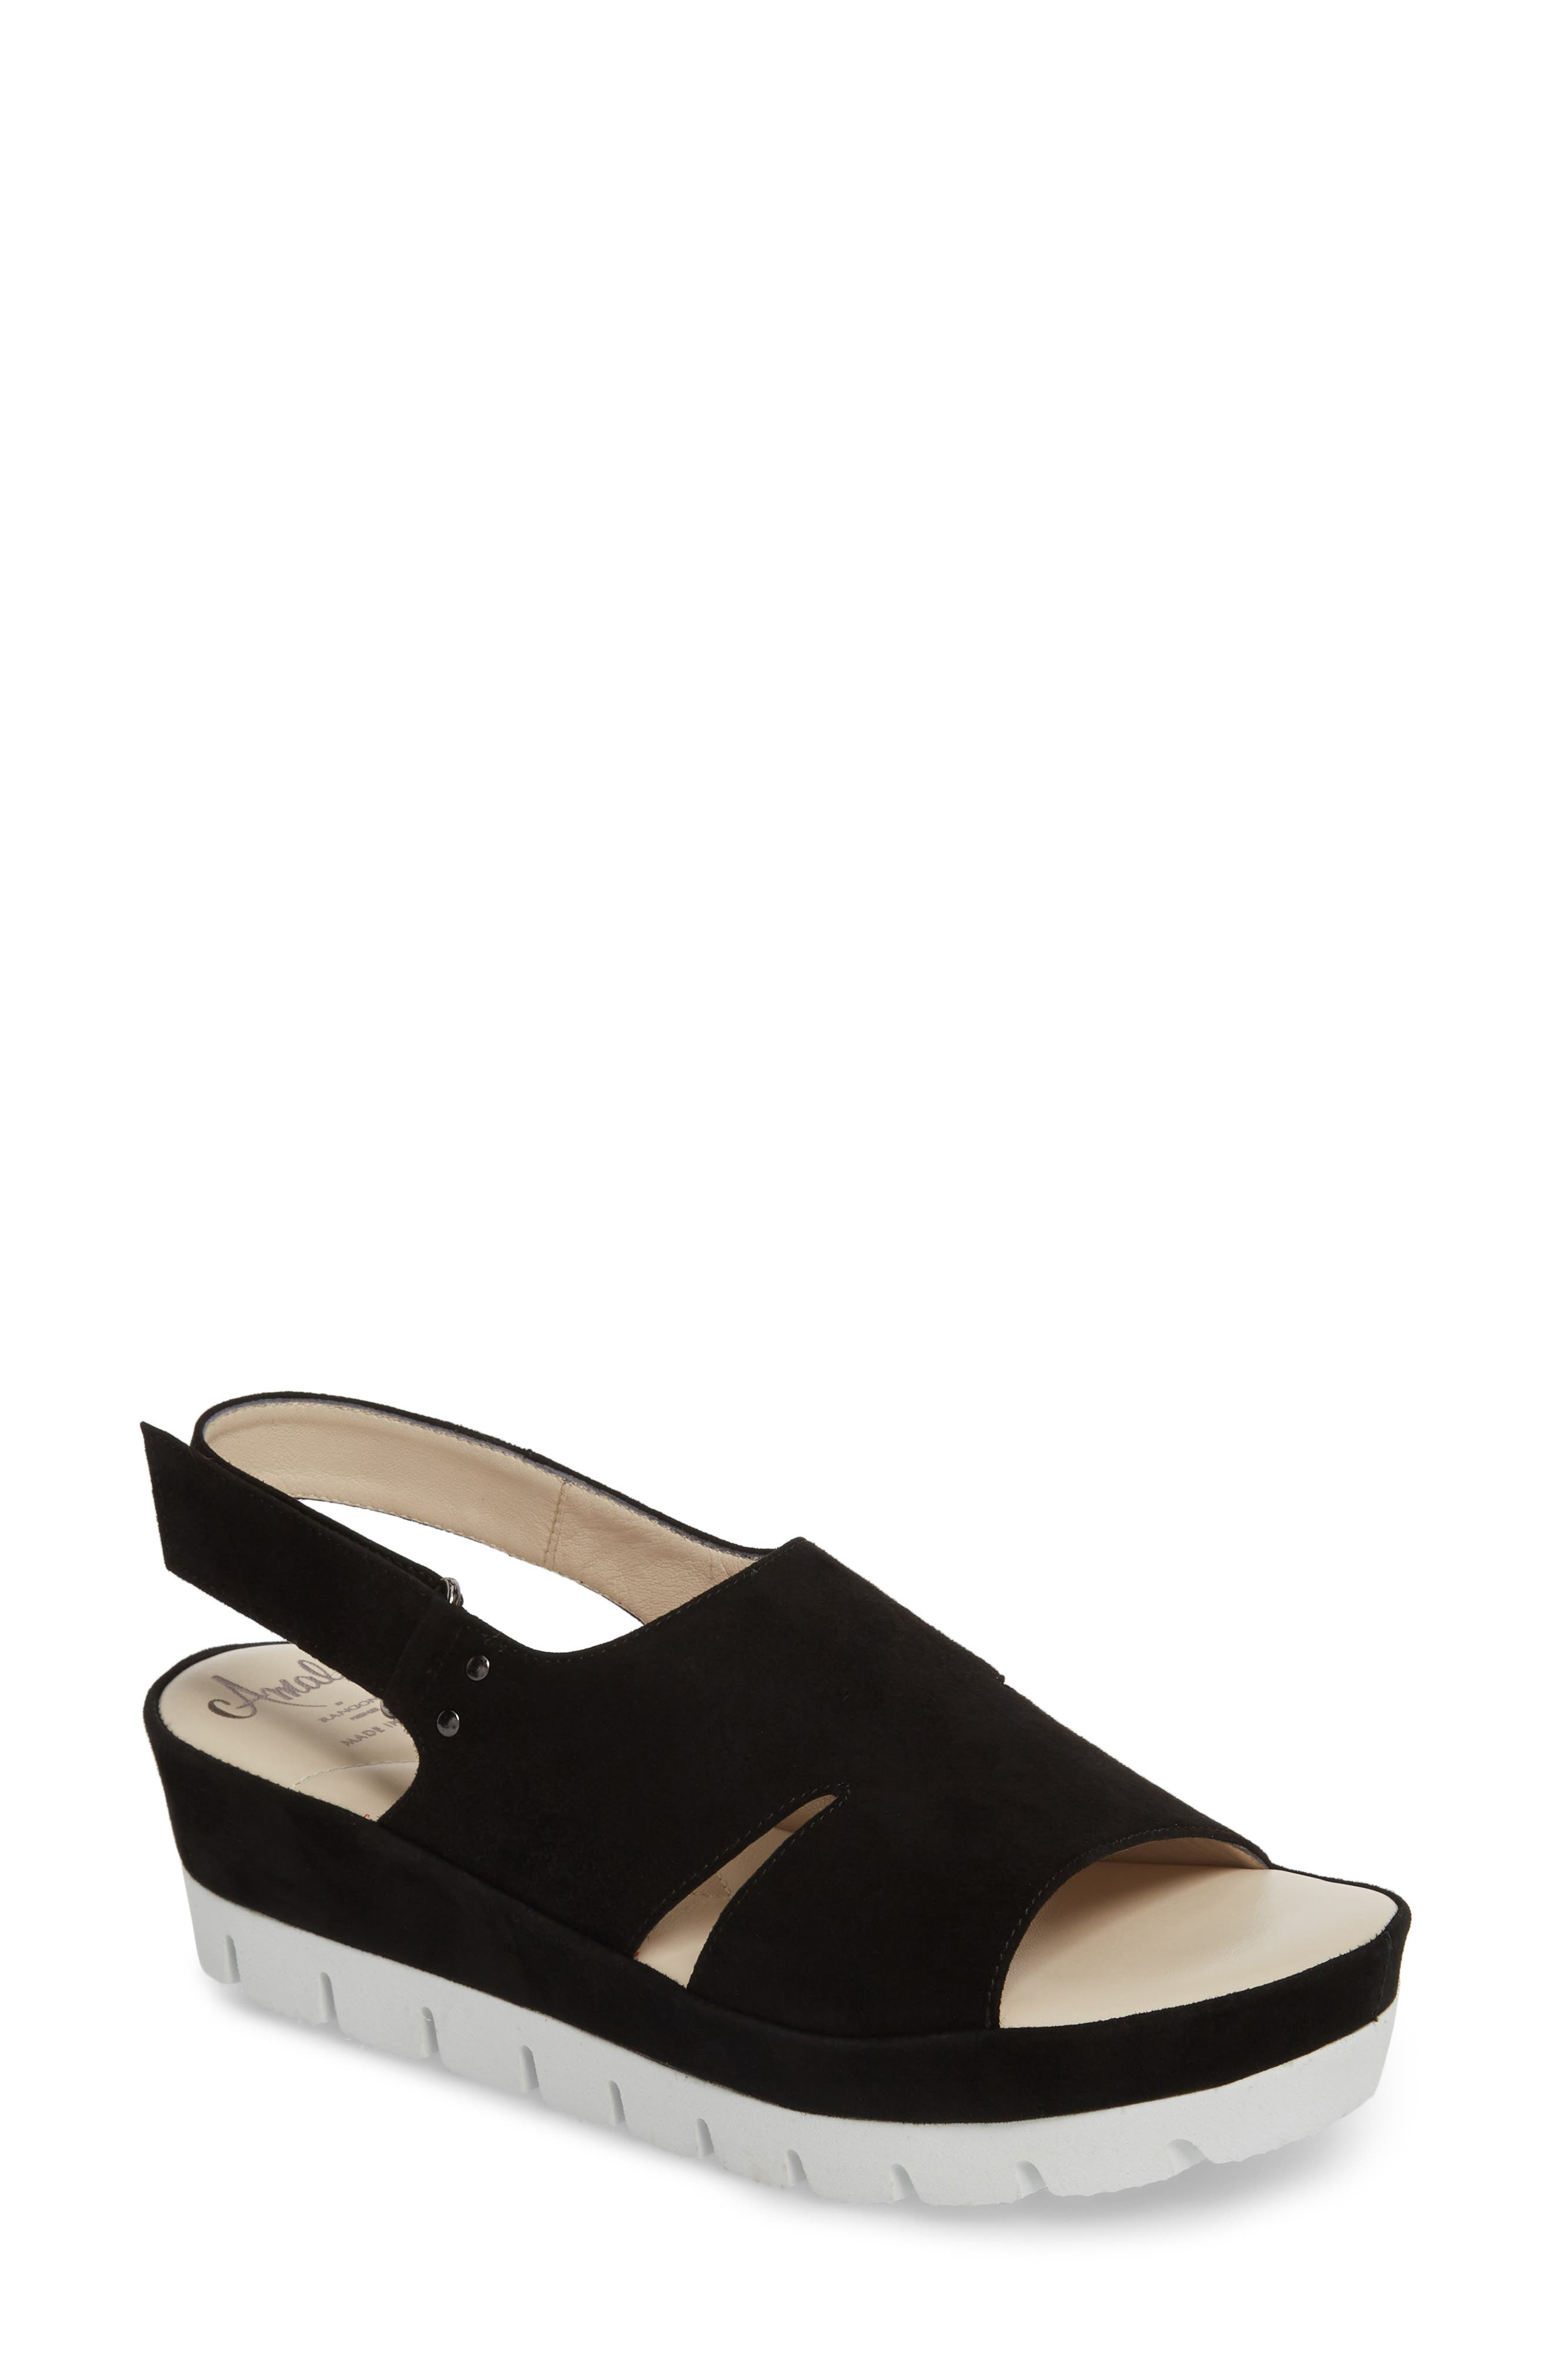 Bergamotto Slingback Wedge Sandal,                             Main thumbnail 1, color,                             BLACK SUEDE